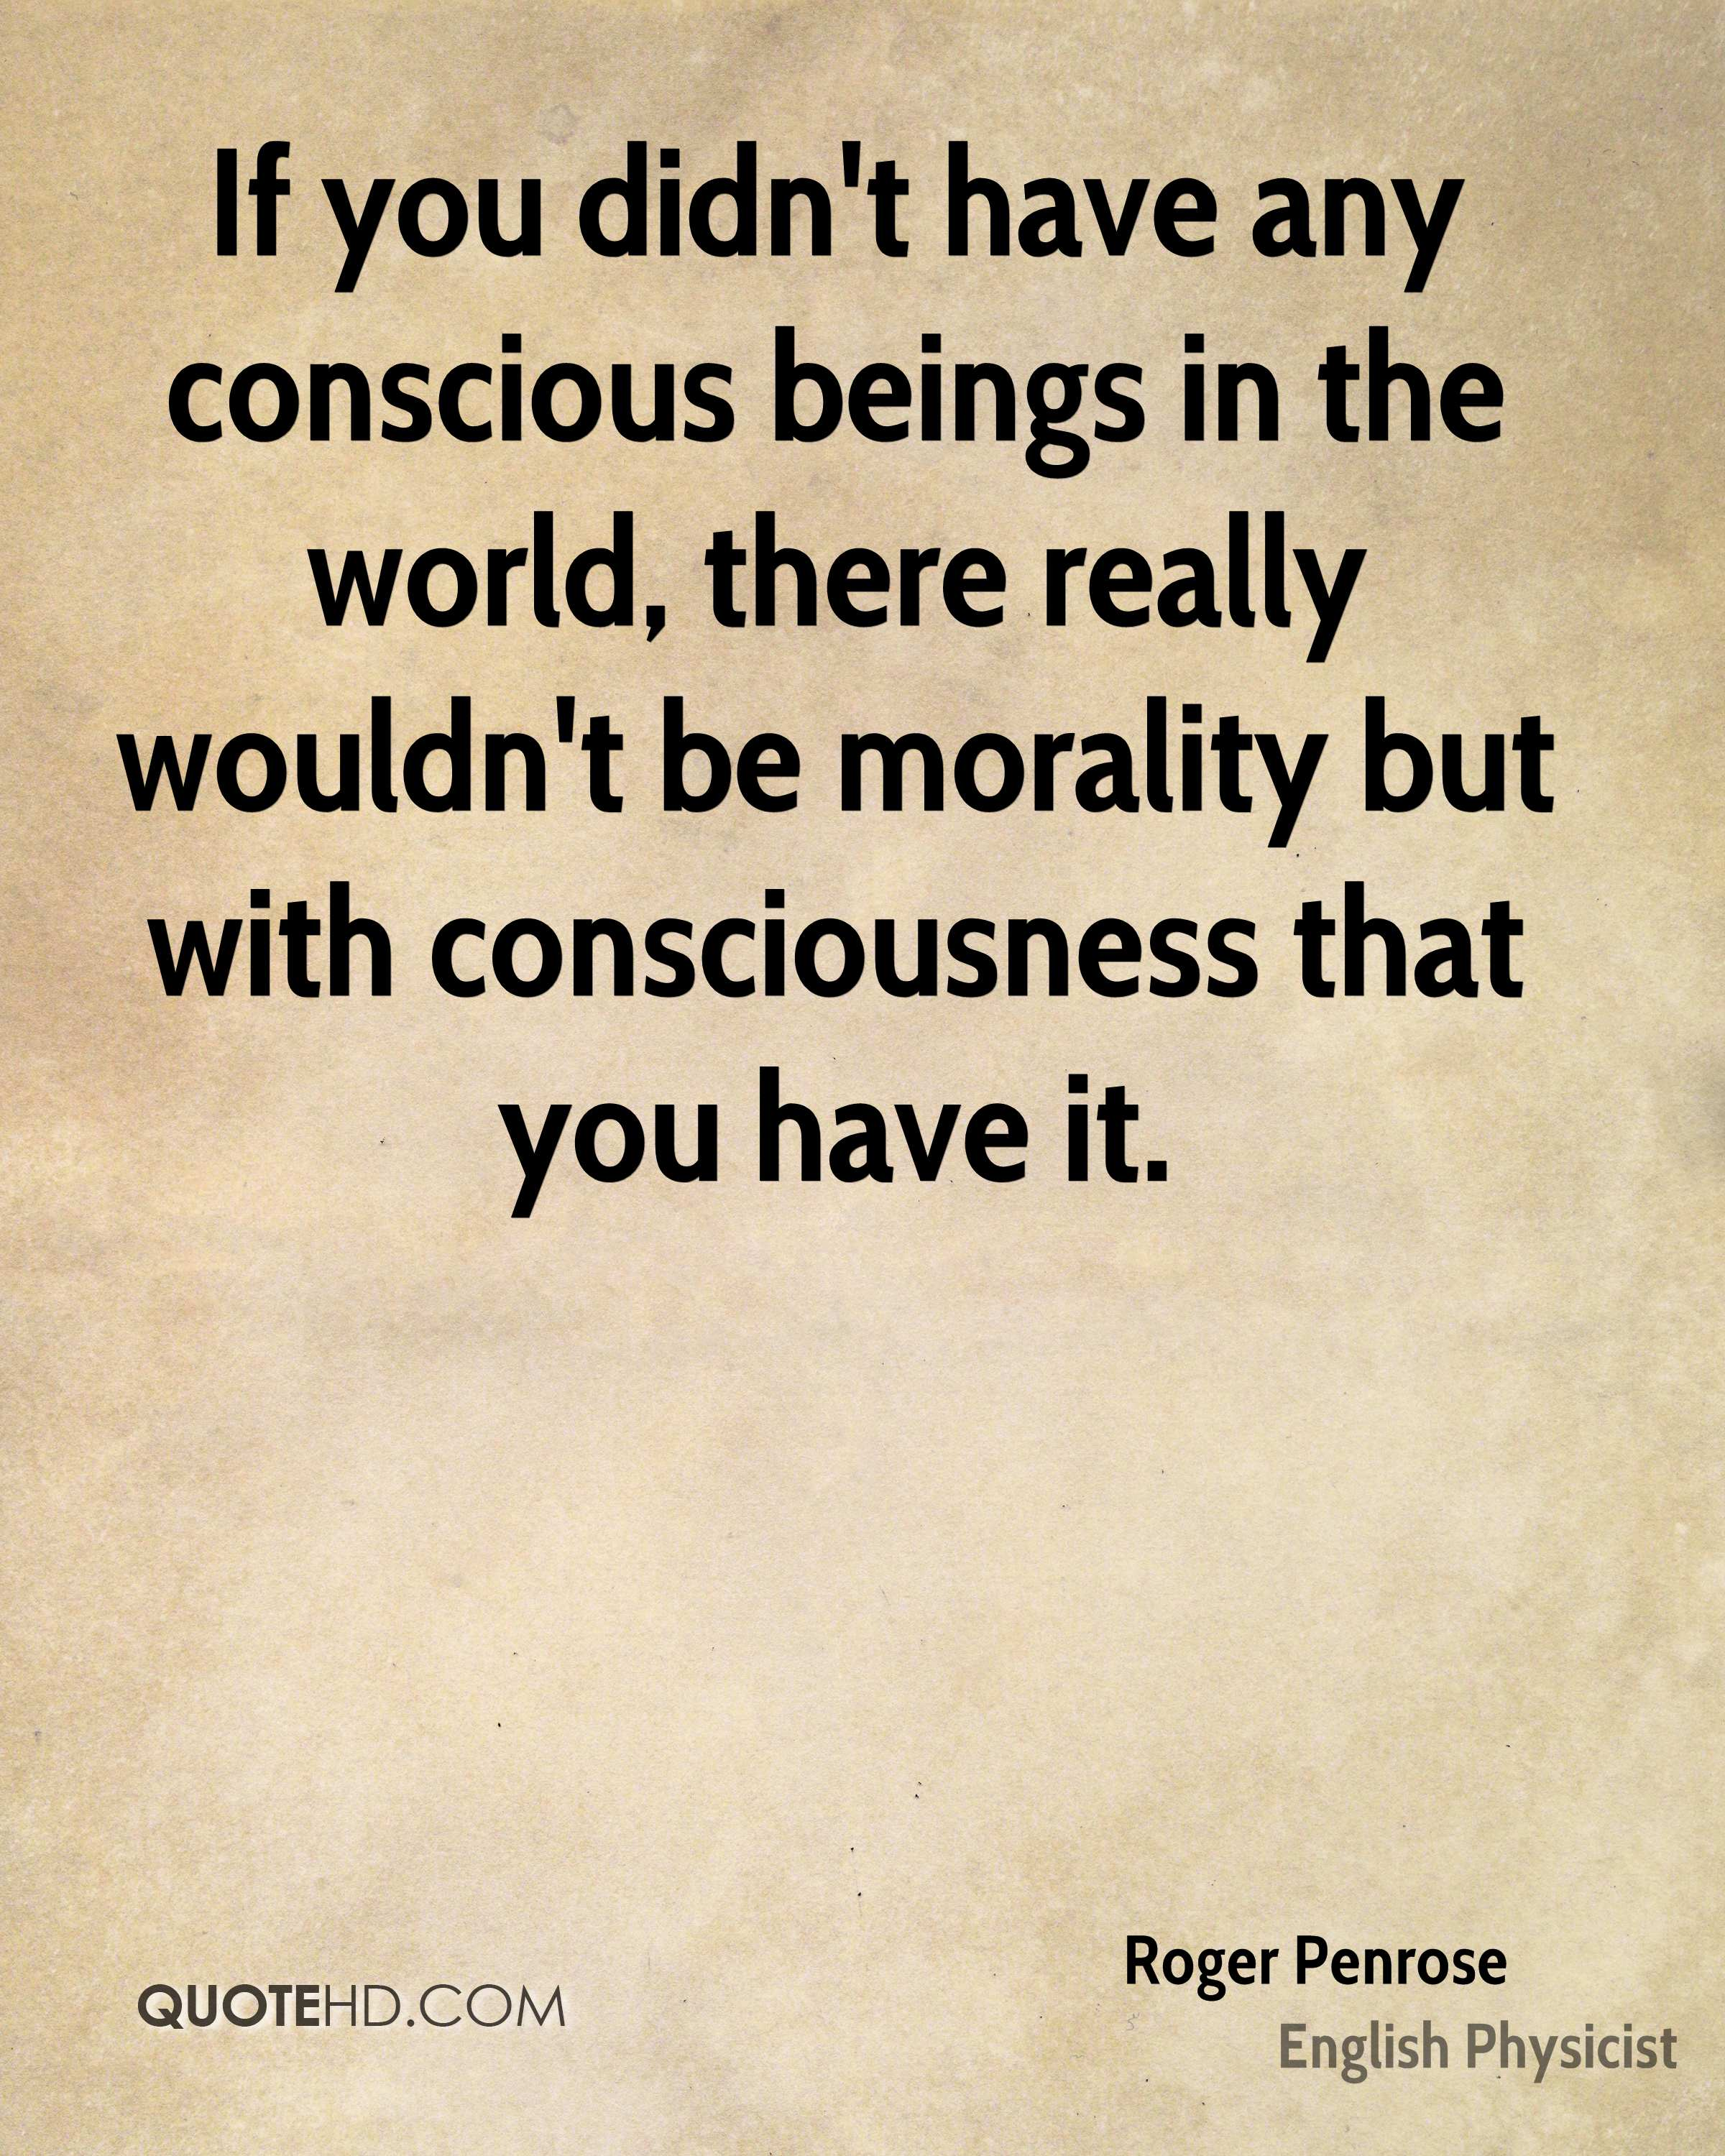 If you didn't have any conscious beings in the world, there really wouldn't be morality but with consciousness that you have it.